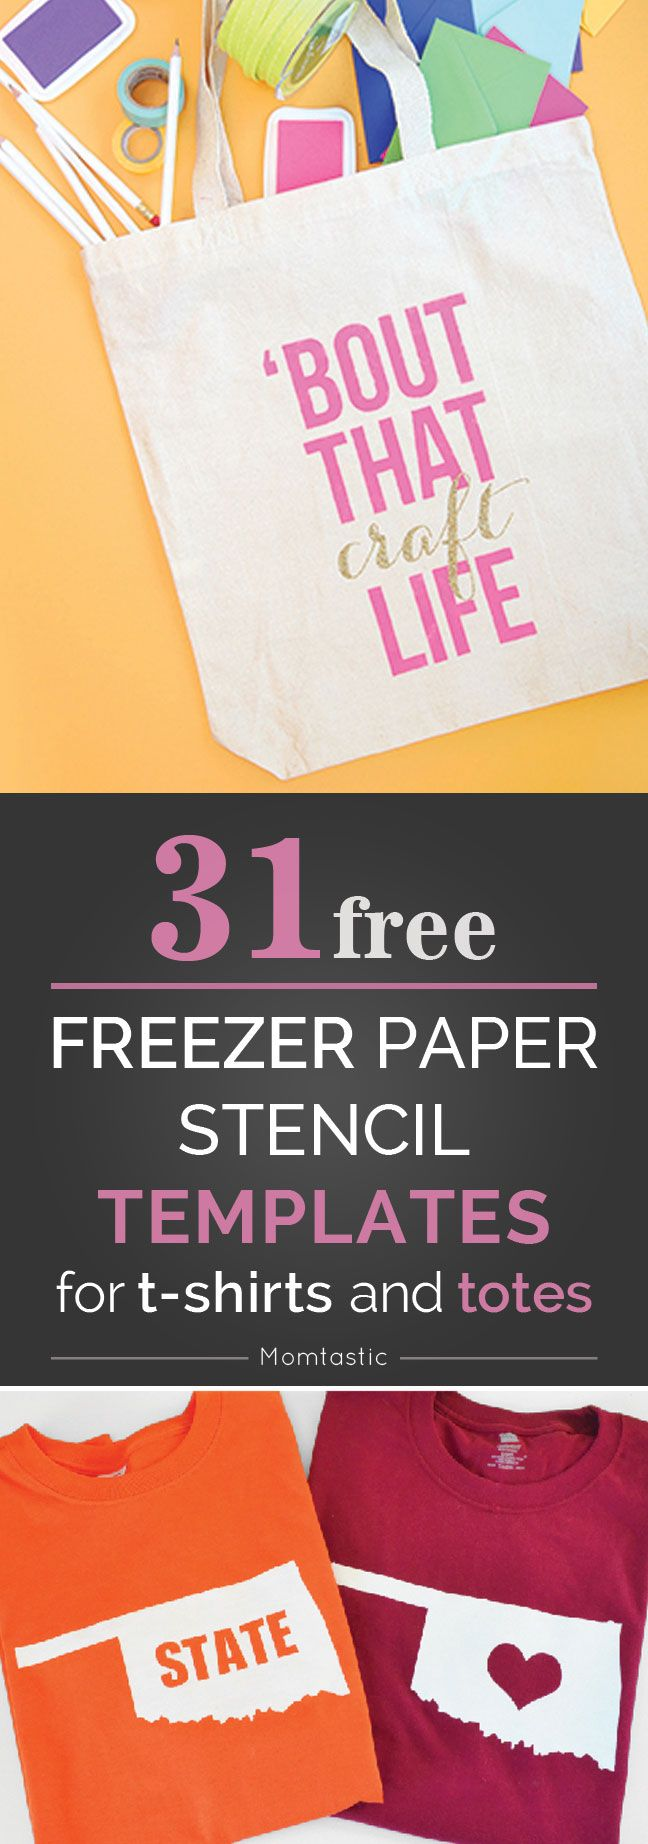 17 best ideas about freezer paper transfers on pinterest for Free t shirt transfer templates